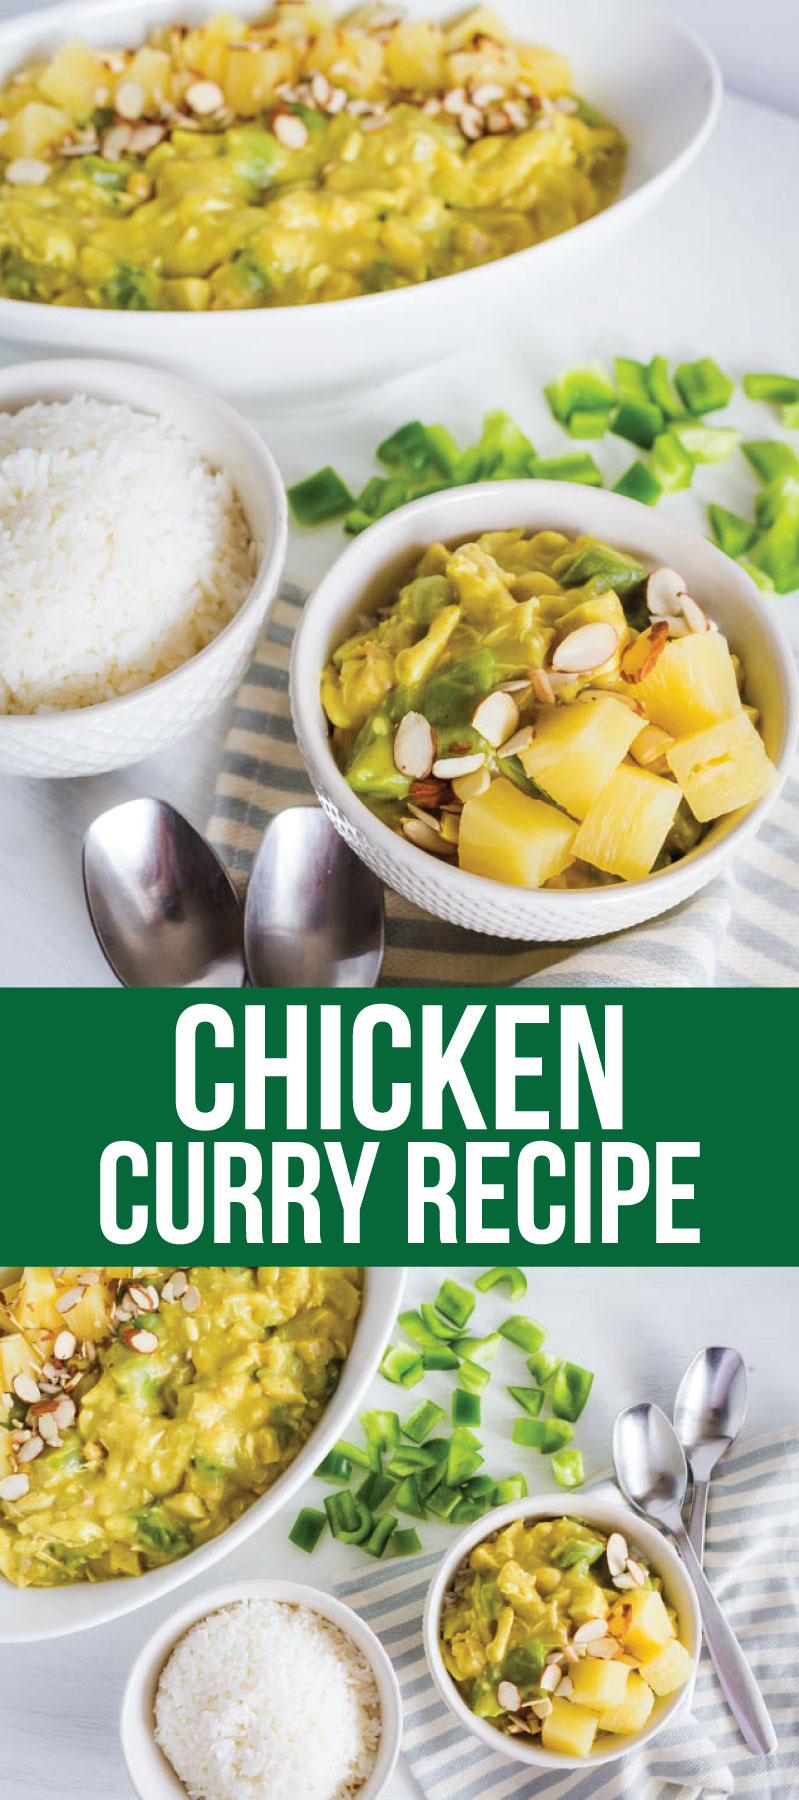 Chicken Curry Recipe - an easy to make family favorite main dish! www.thirtyhandmadedays.com